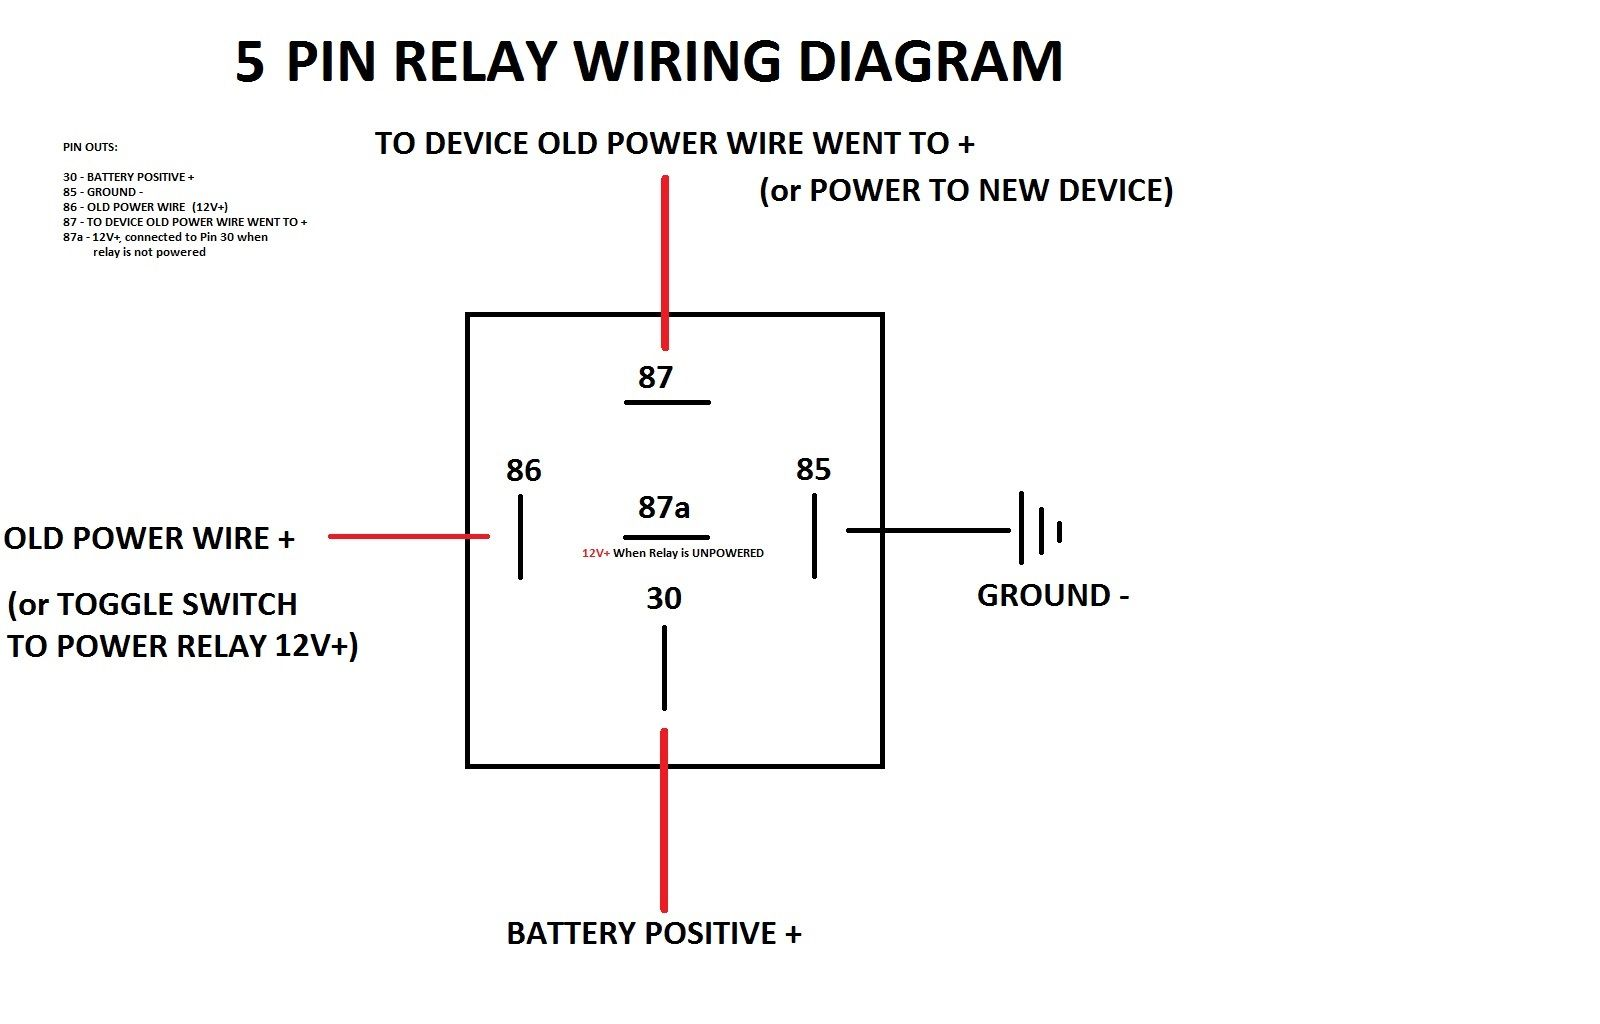 7 Pin Relay Diagram Wiring For Ceiling Light Simple 5 Dsmtuners 12 V Pinterest